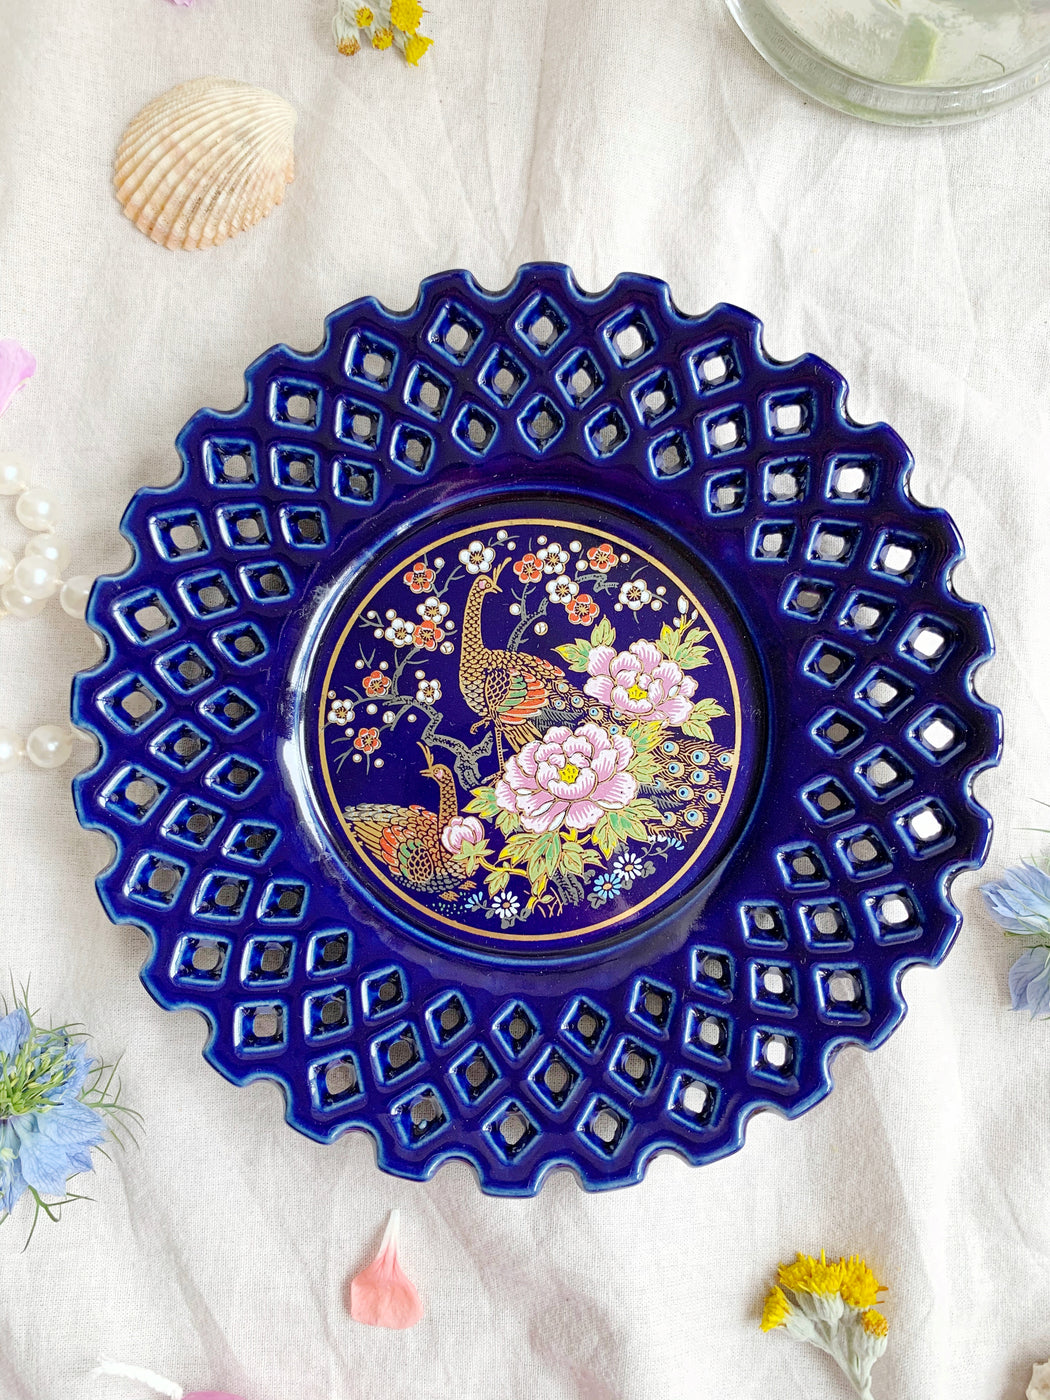 Blue Peacock Plate - Storytellers Workshop